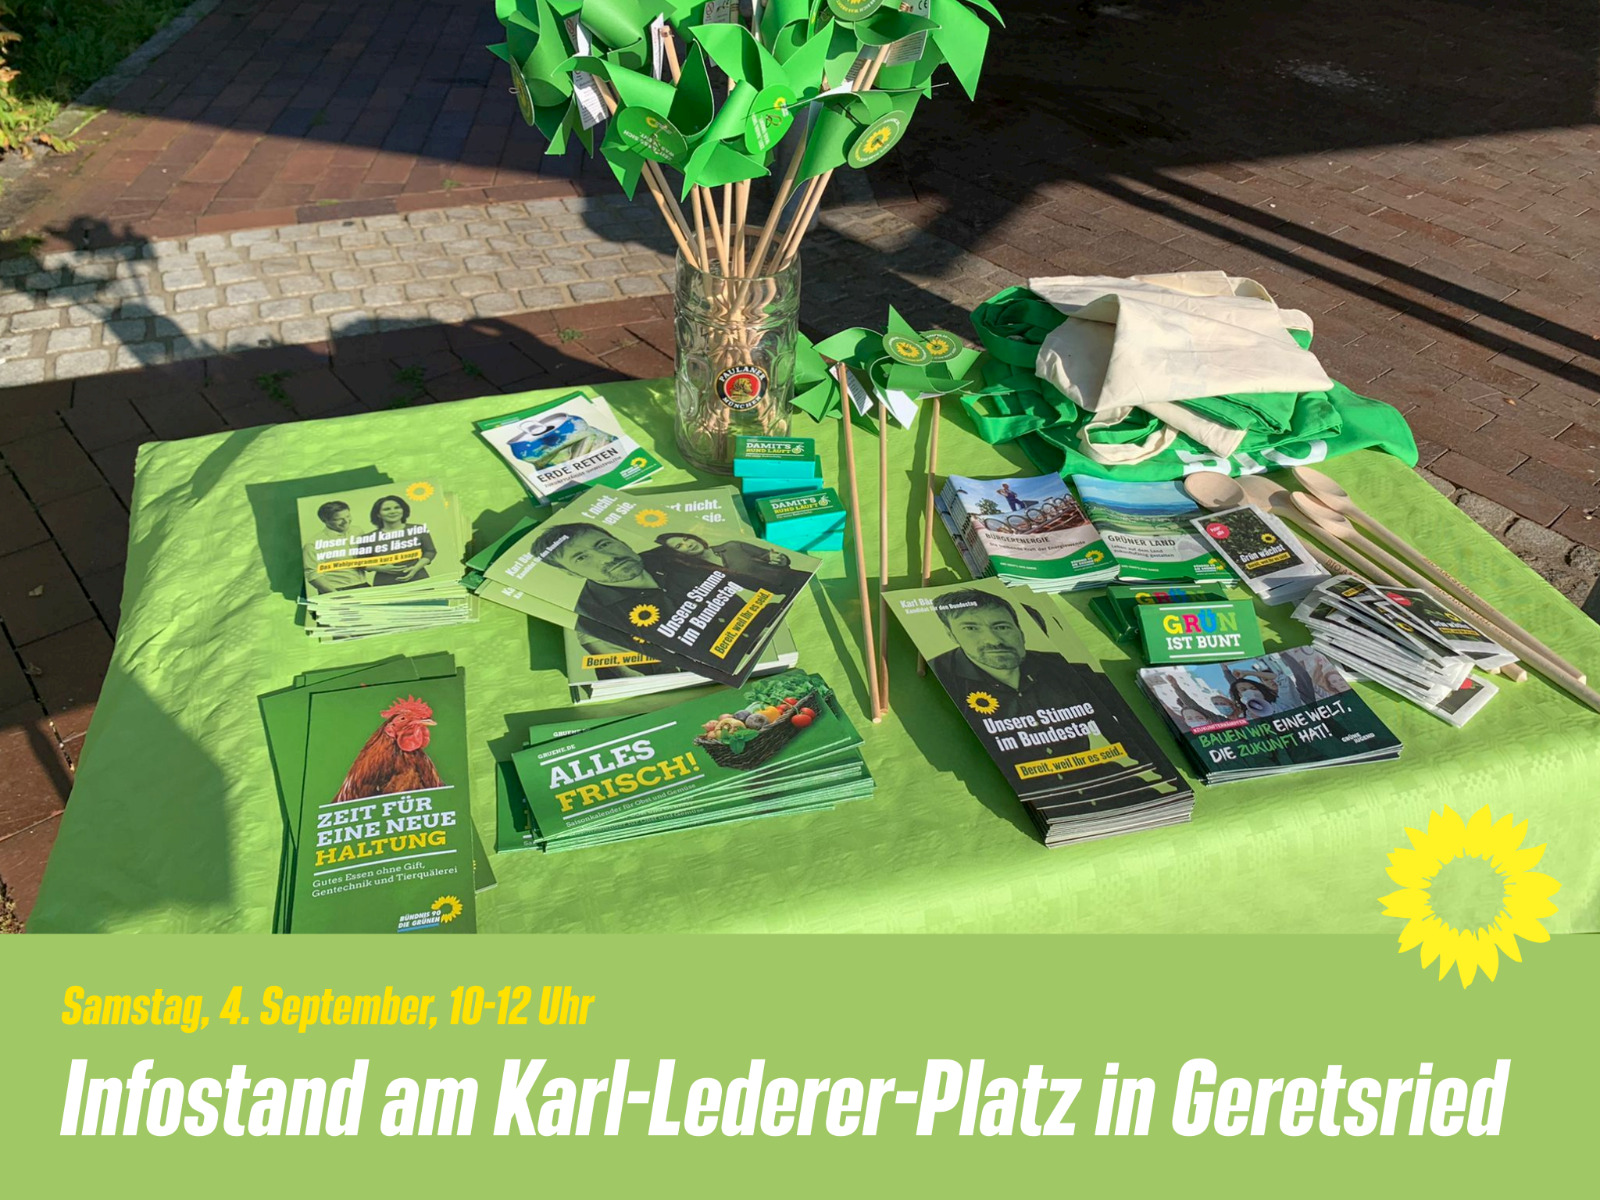 Infostand in Geretsried